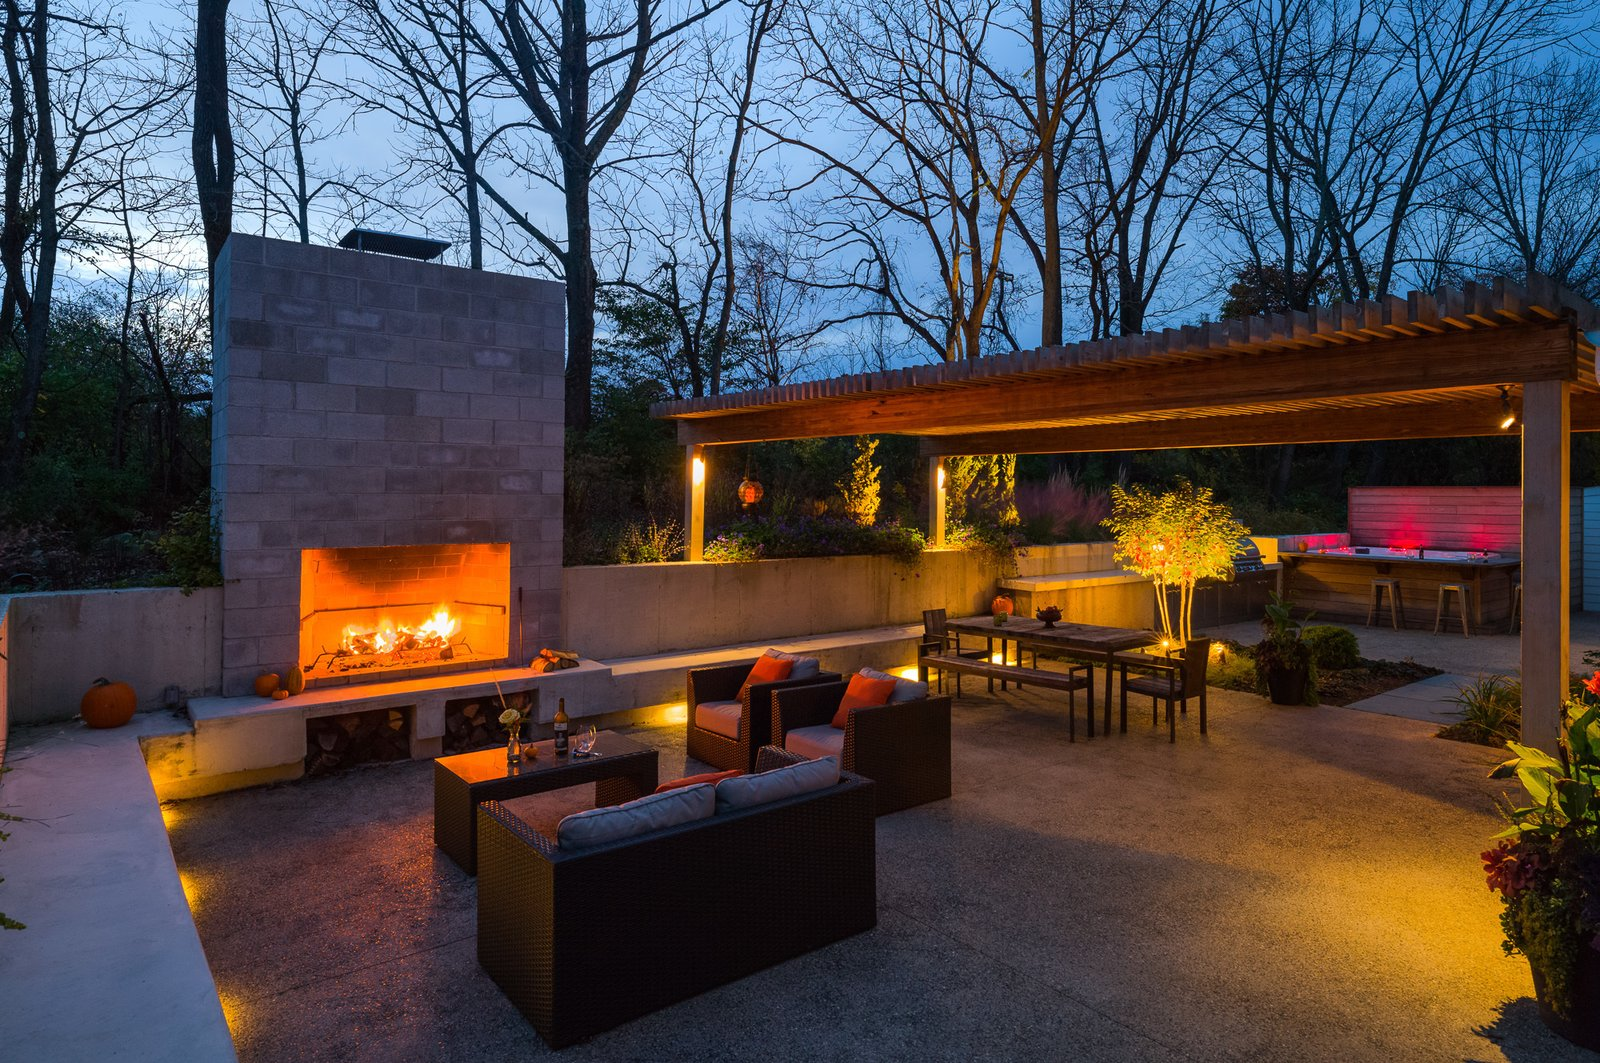 """A small wooden deck originally anchored the backyard, which has since been transformed into a larger social area. """"We wanted something that was sunken into the earth that would feel like you're enveloped by the surroundings,"""" Michael says. In order to achieve this, he installed a concrete retaining wall that's level with the soil above it, so foliage will gradually grow into the living space. This feature creates an almost ruin-like feeling and a direct connection to the surrounding landscaping.  Photo 7 of 8 in A Loving Renovation Updates a Rustic Family Home with Reclaimed Materials"""